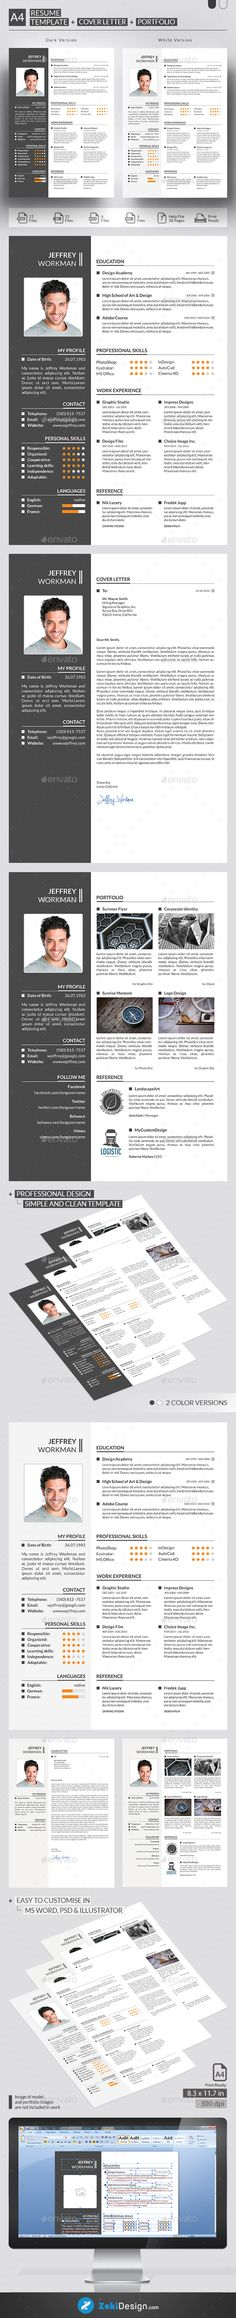 Scientific Cv Latex Templates%0A cover letter template for administrative position